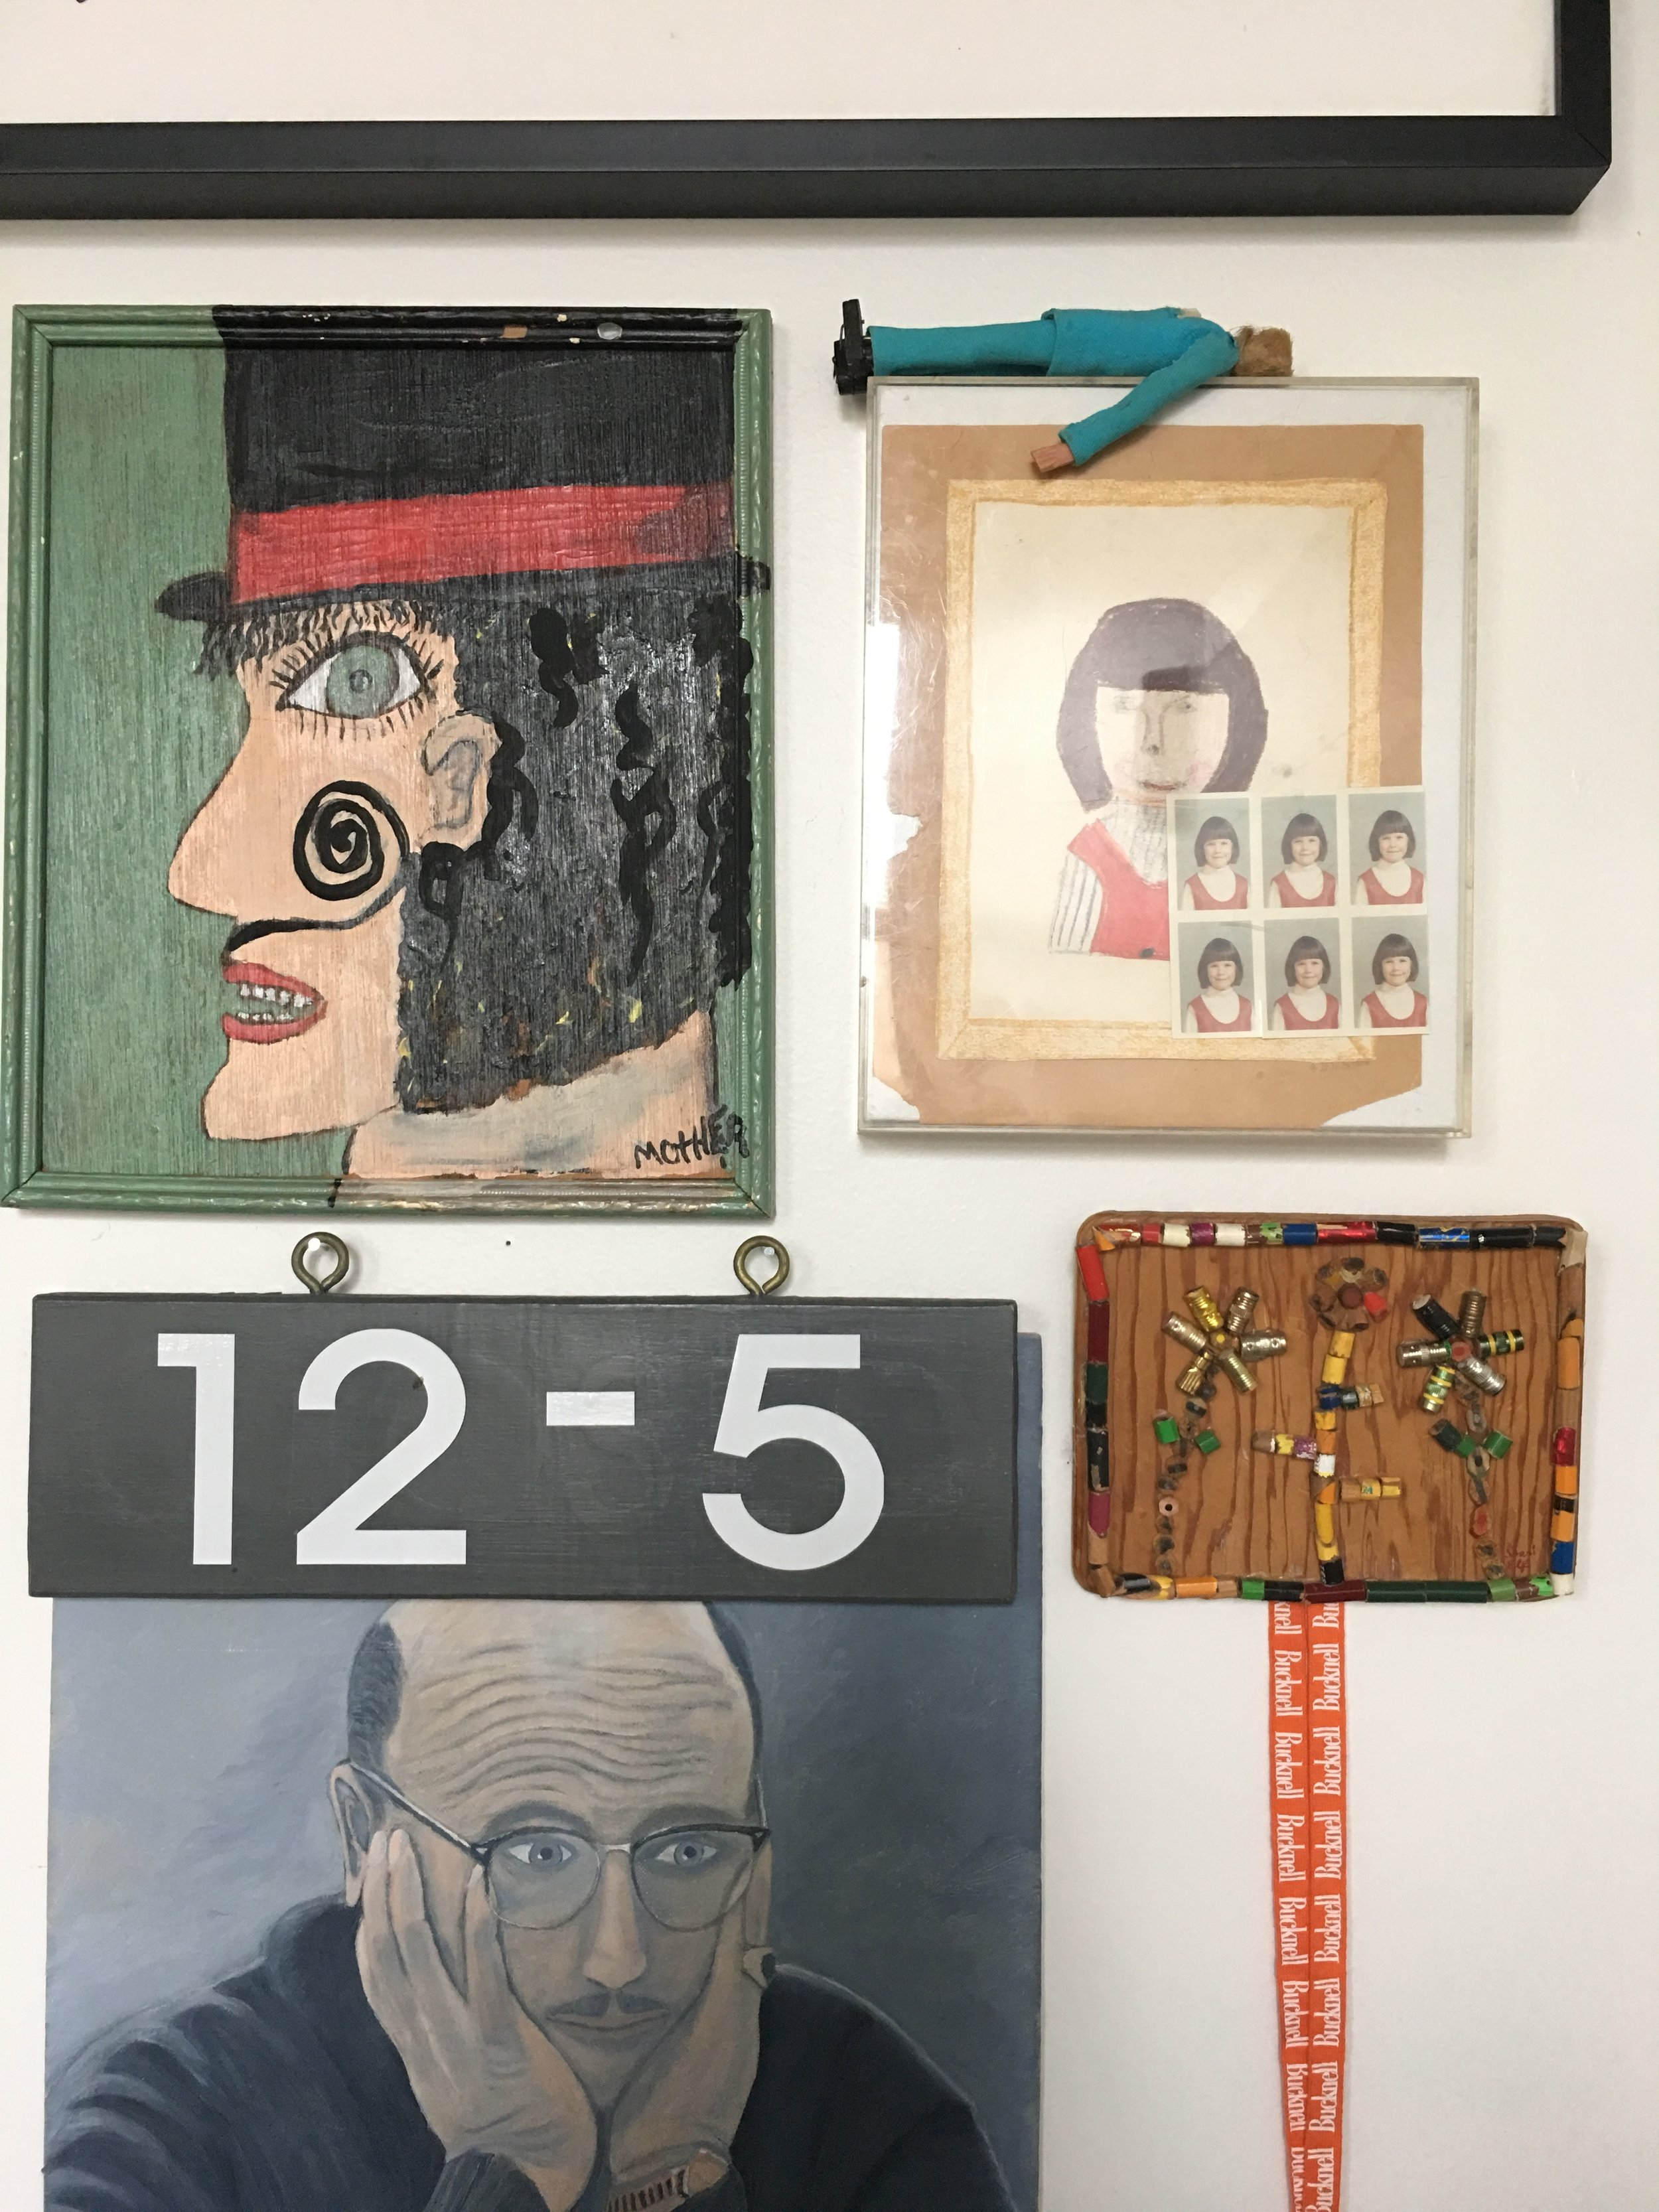 A gallery wall in the library includes an amazing combination of works including family pieces and fun objects like the little man in the blue suit above a childhood self portrait.